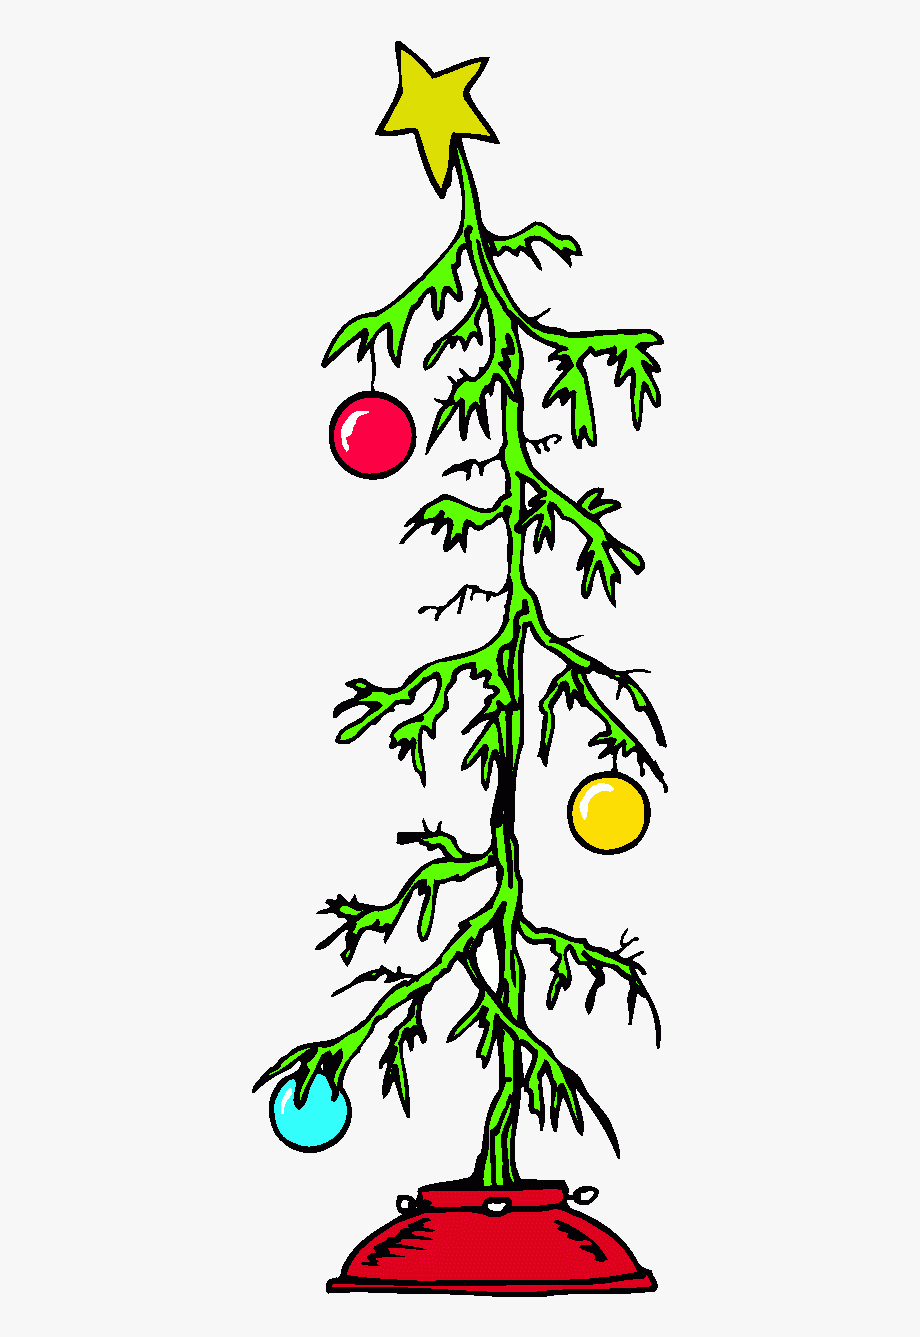 1761 Grinch free clipart.